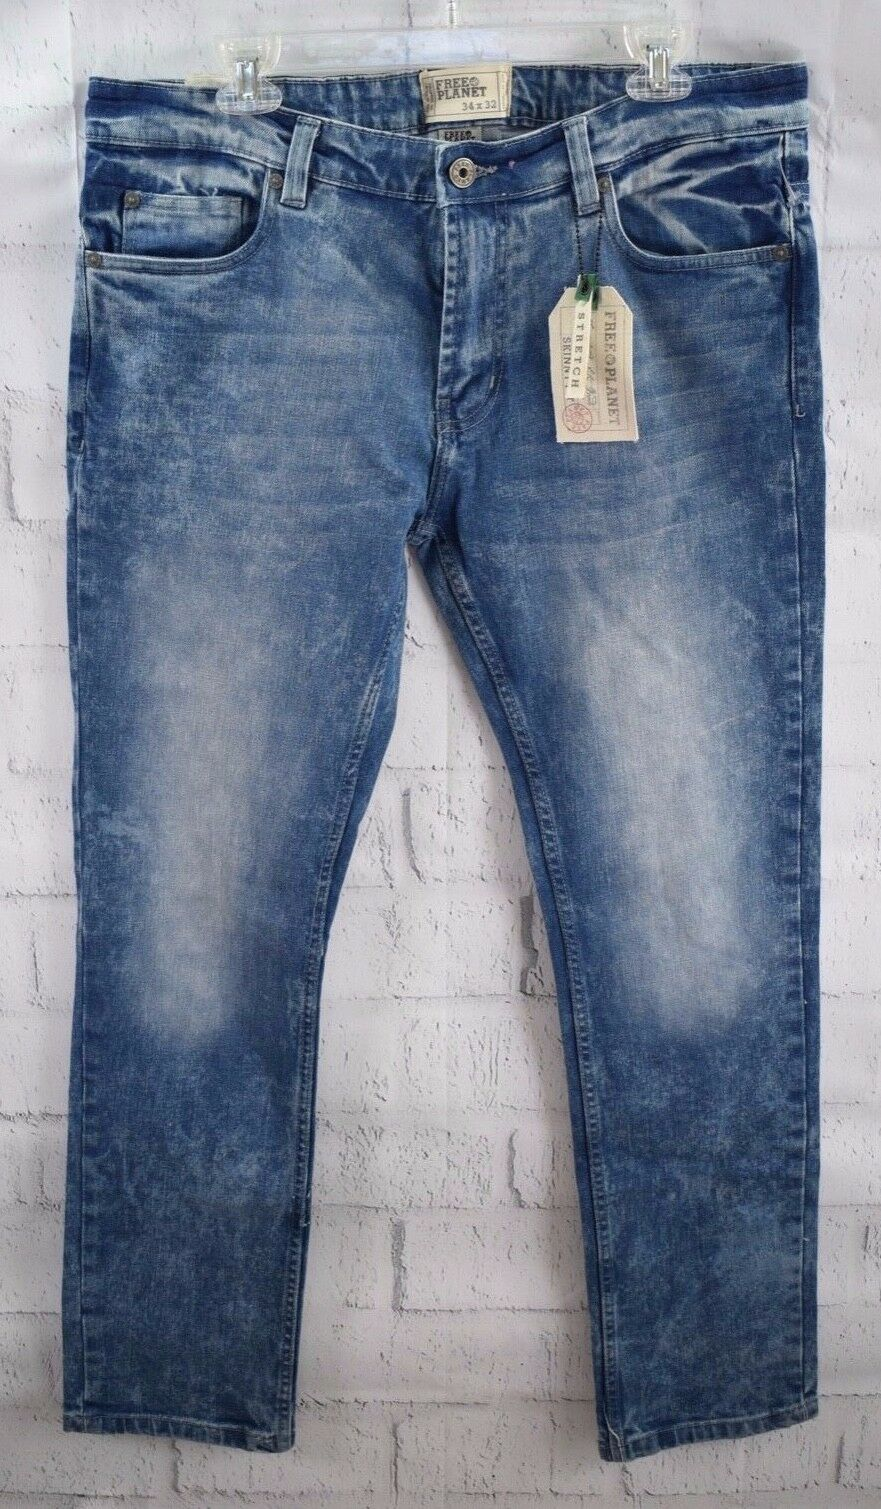 New Free Planet Mens Skinny Fit Jeans Stretch Med Wash Faded Clark Sz 34 32